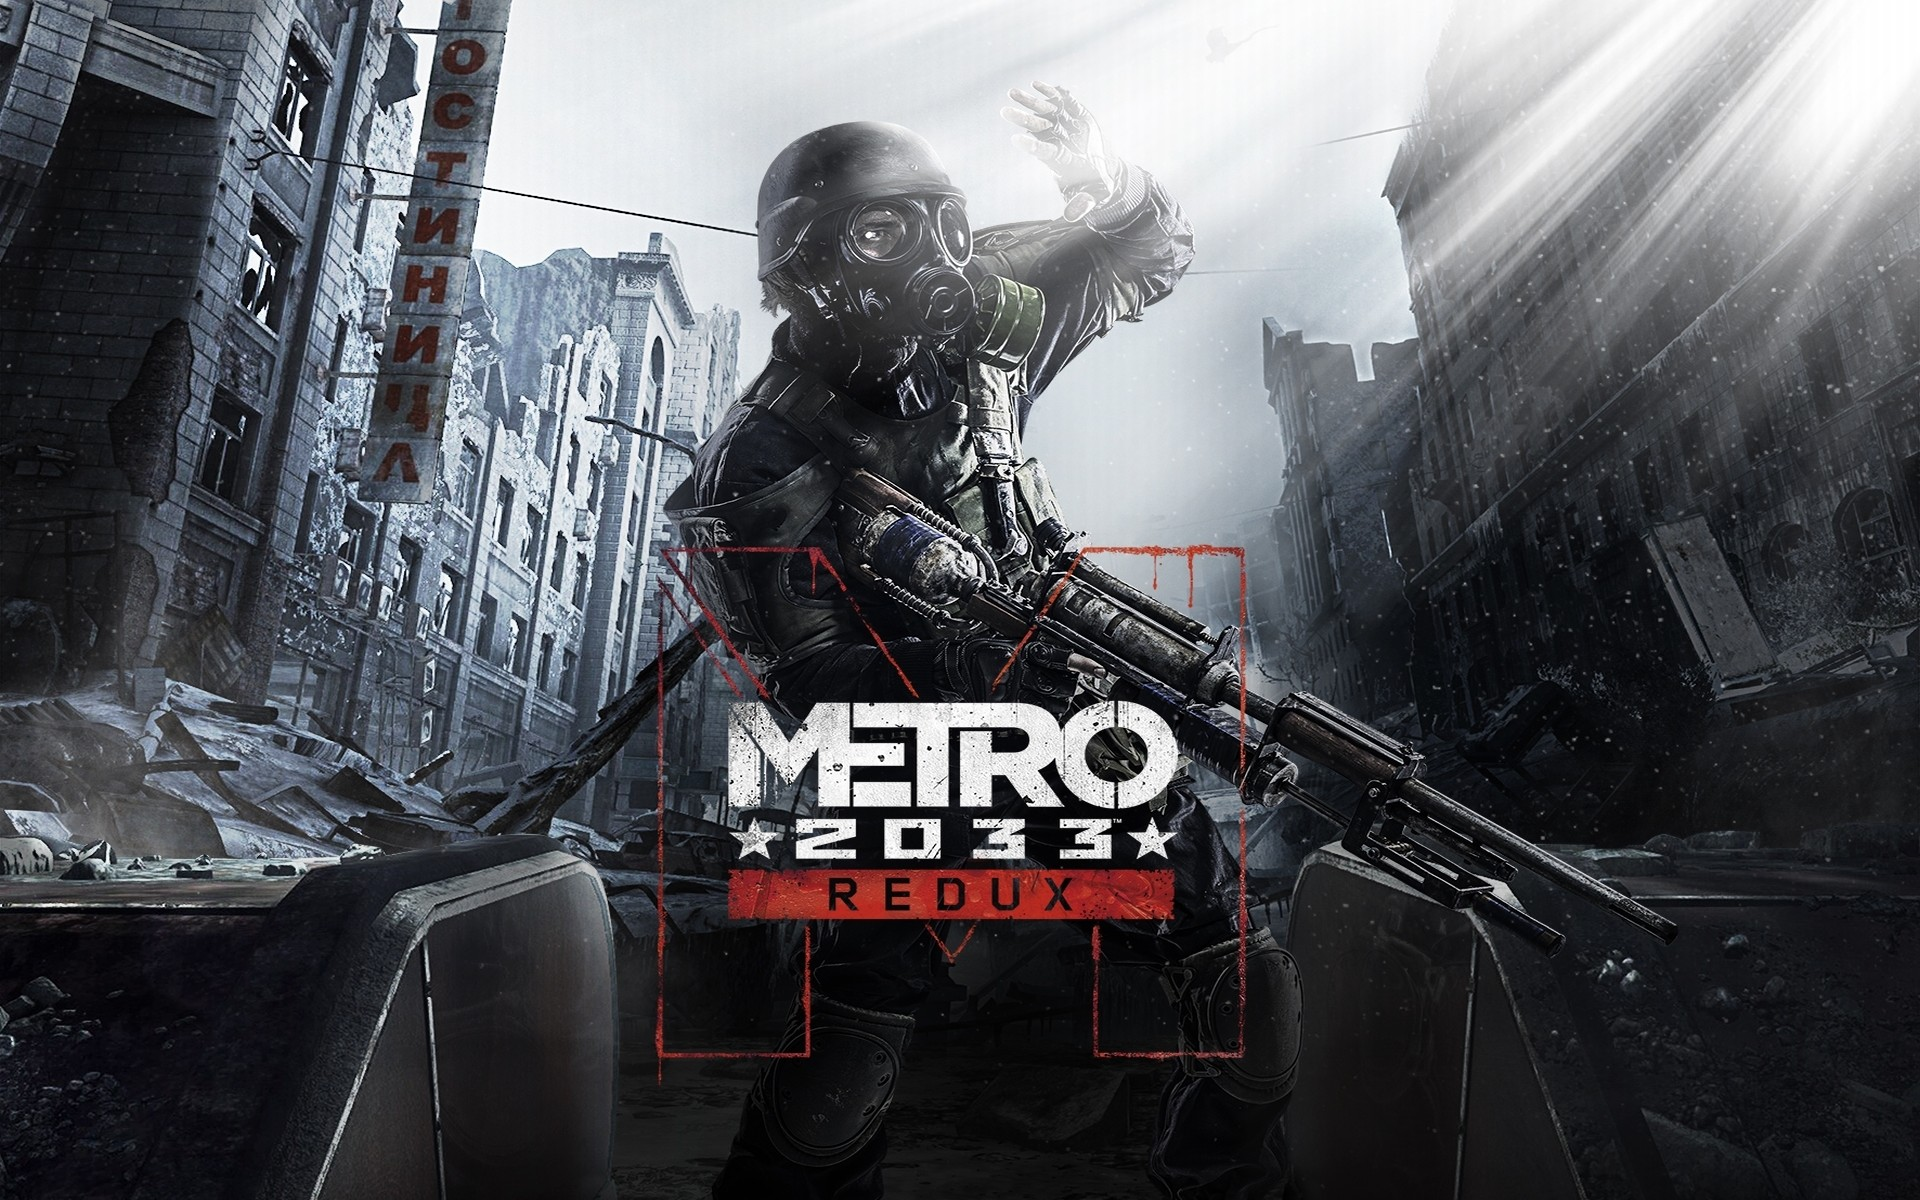 Metro 2033 Redux Review